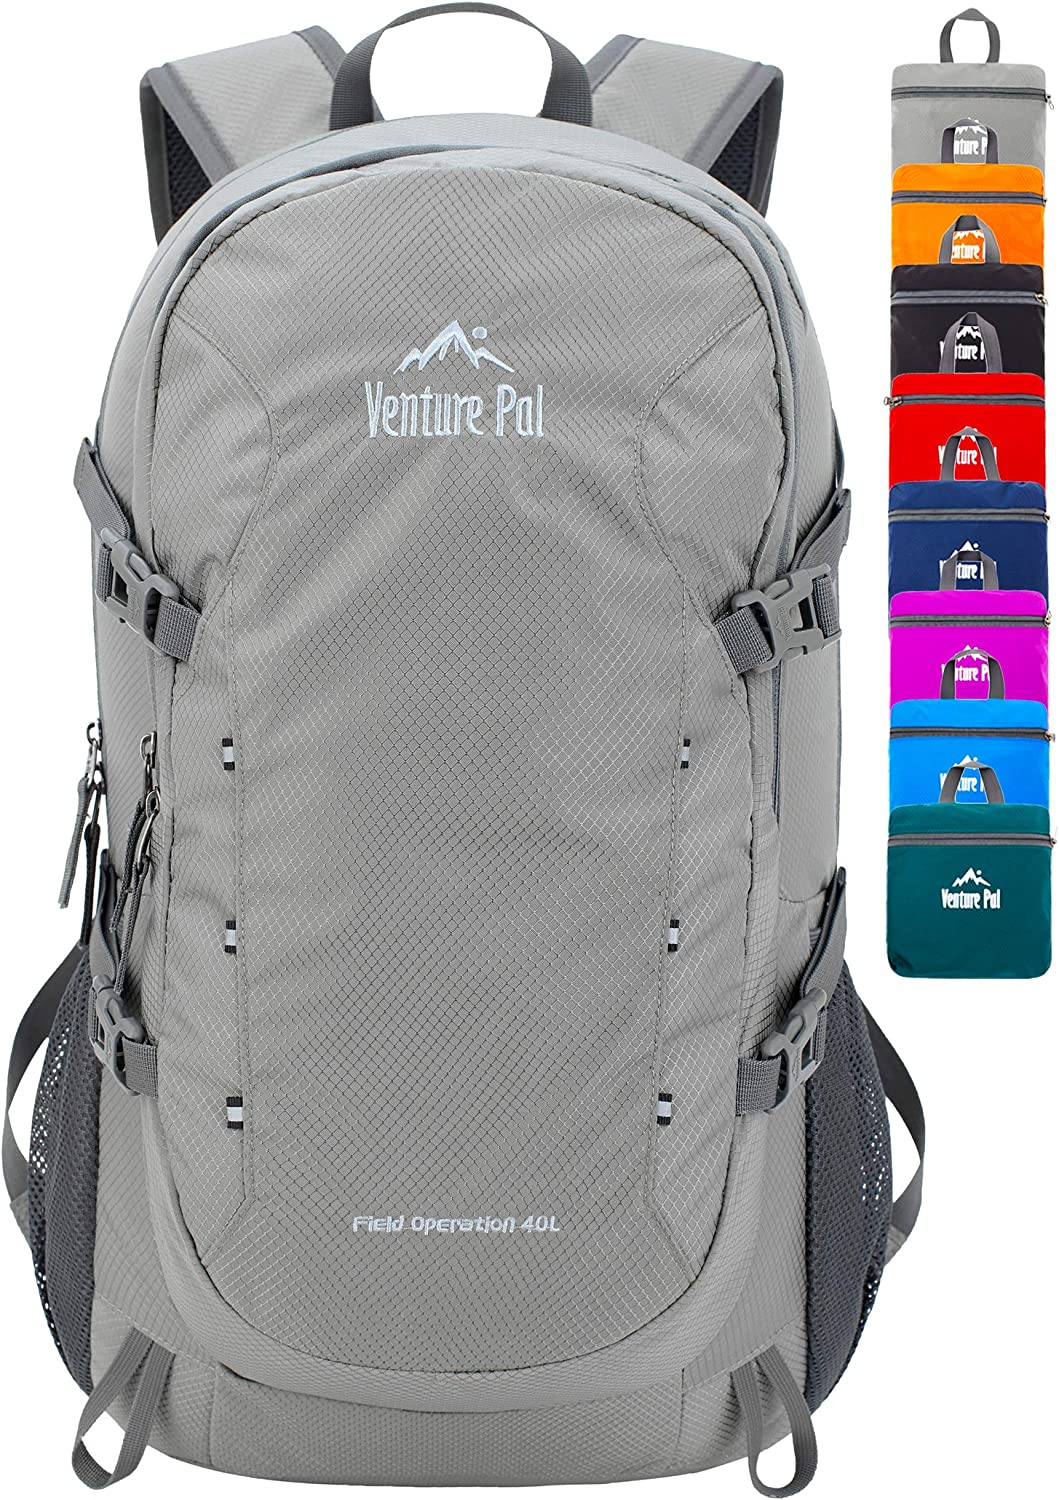 Venture Pal Lightweight Packable Travel Hiking Backpack